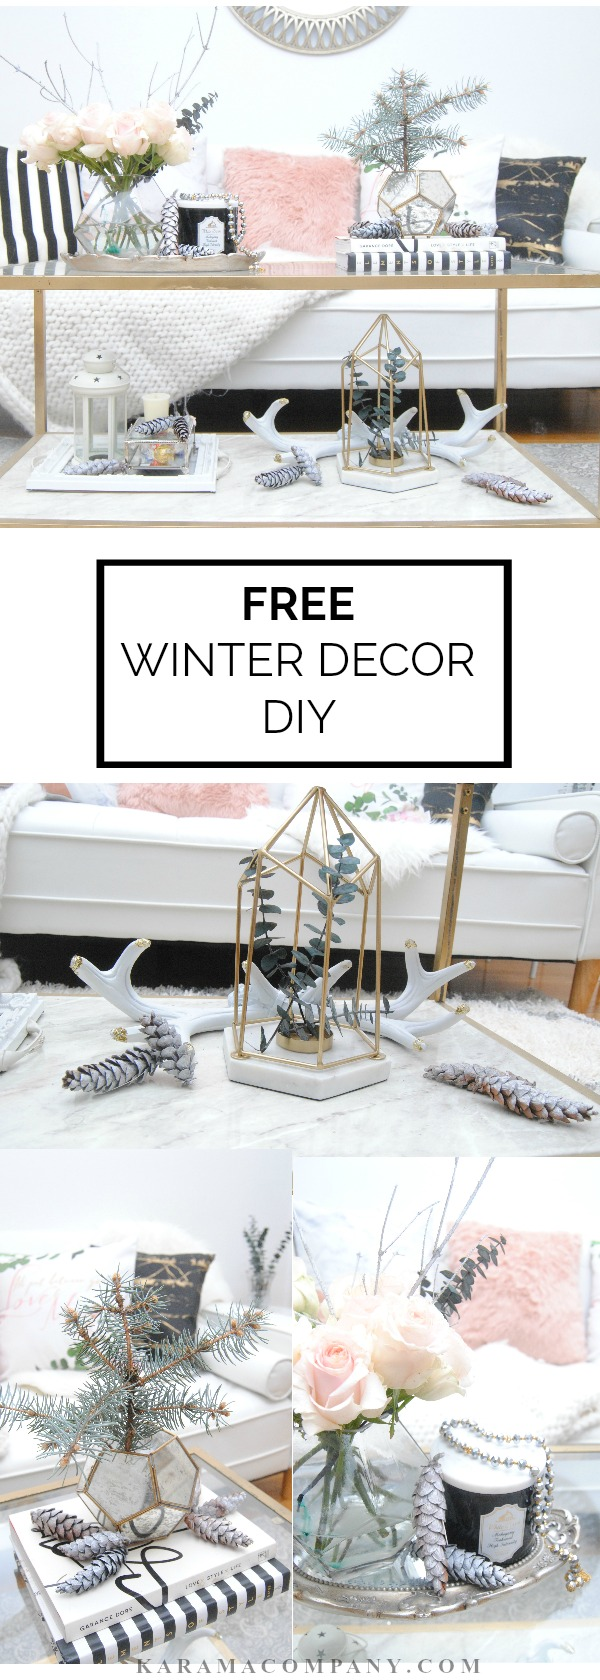 free-winter-decor-diy